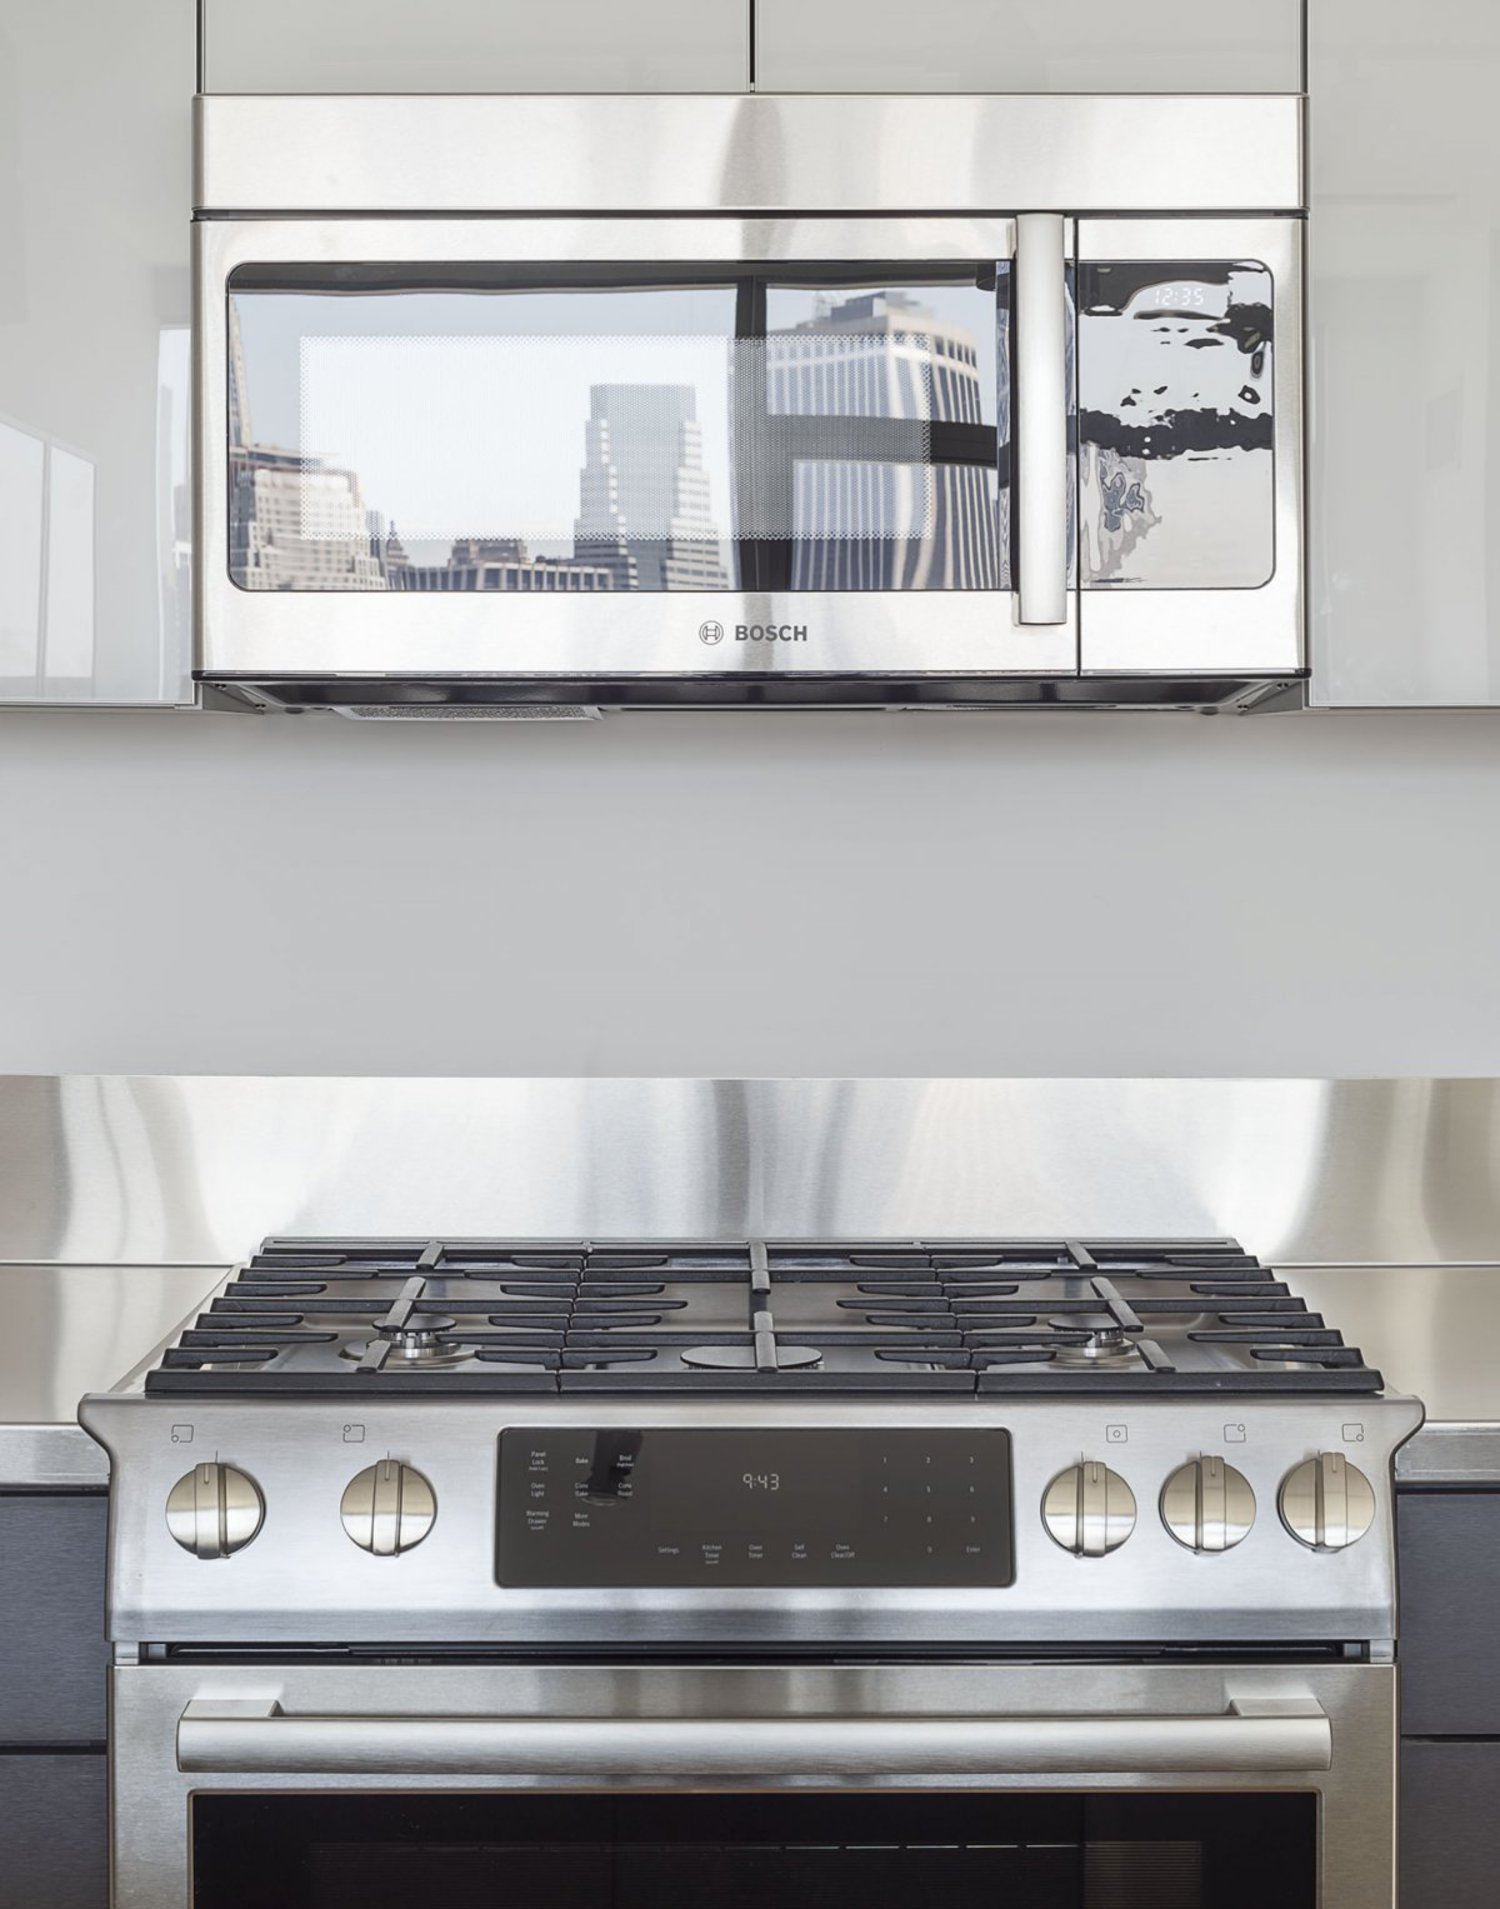 The amenities are just as nice as you'd expect. Top-of-the-line Bosch appliances fill the space.